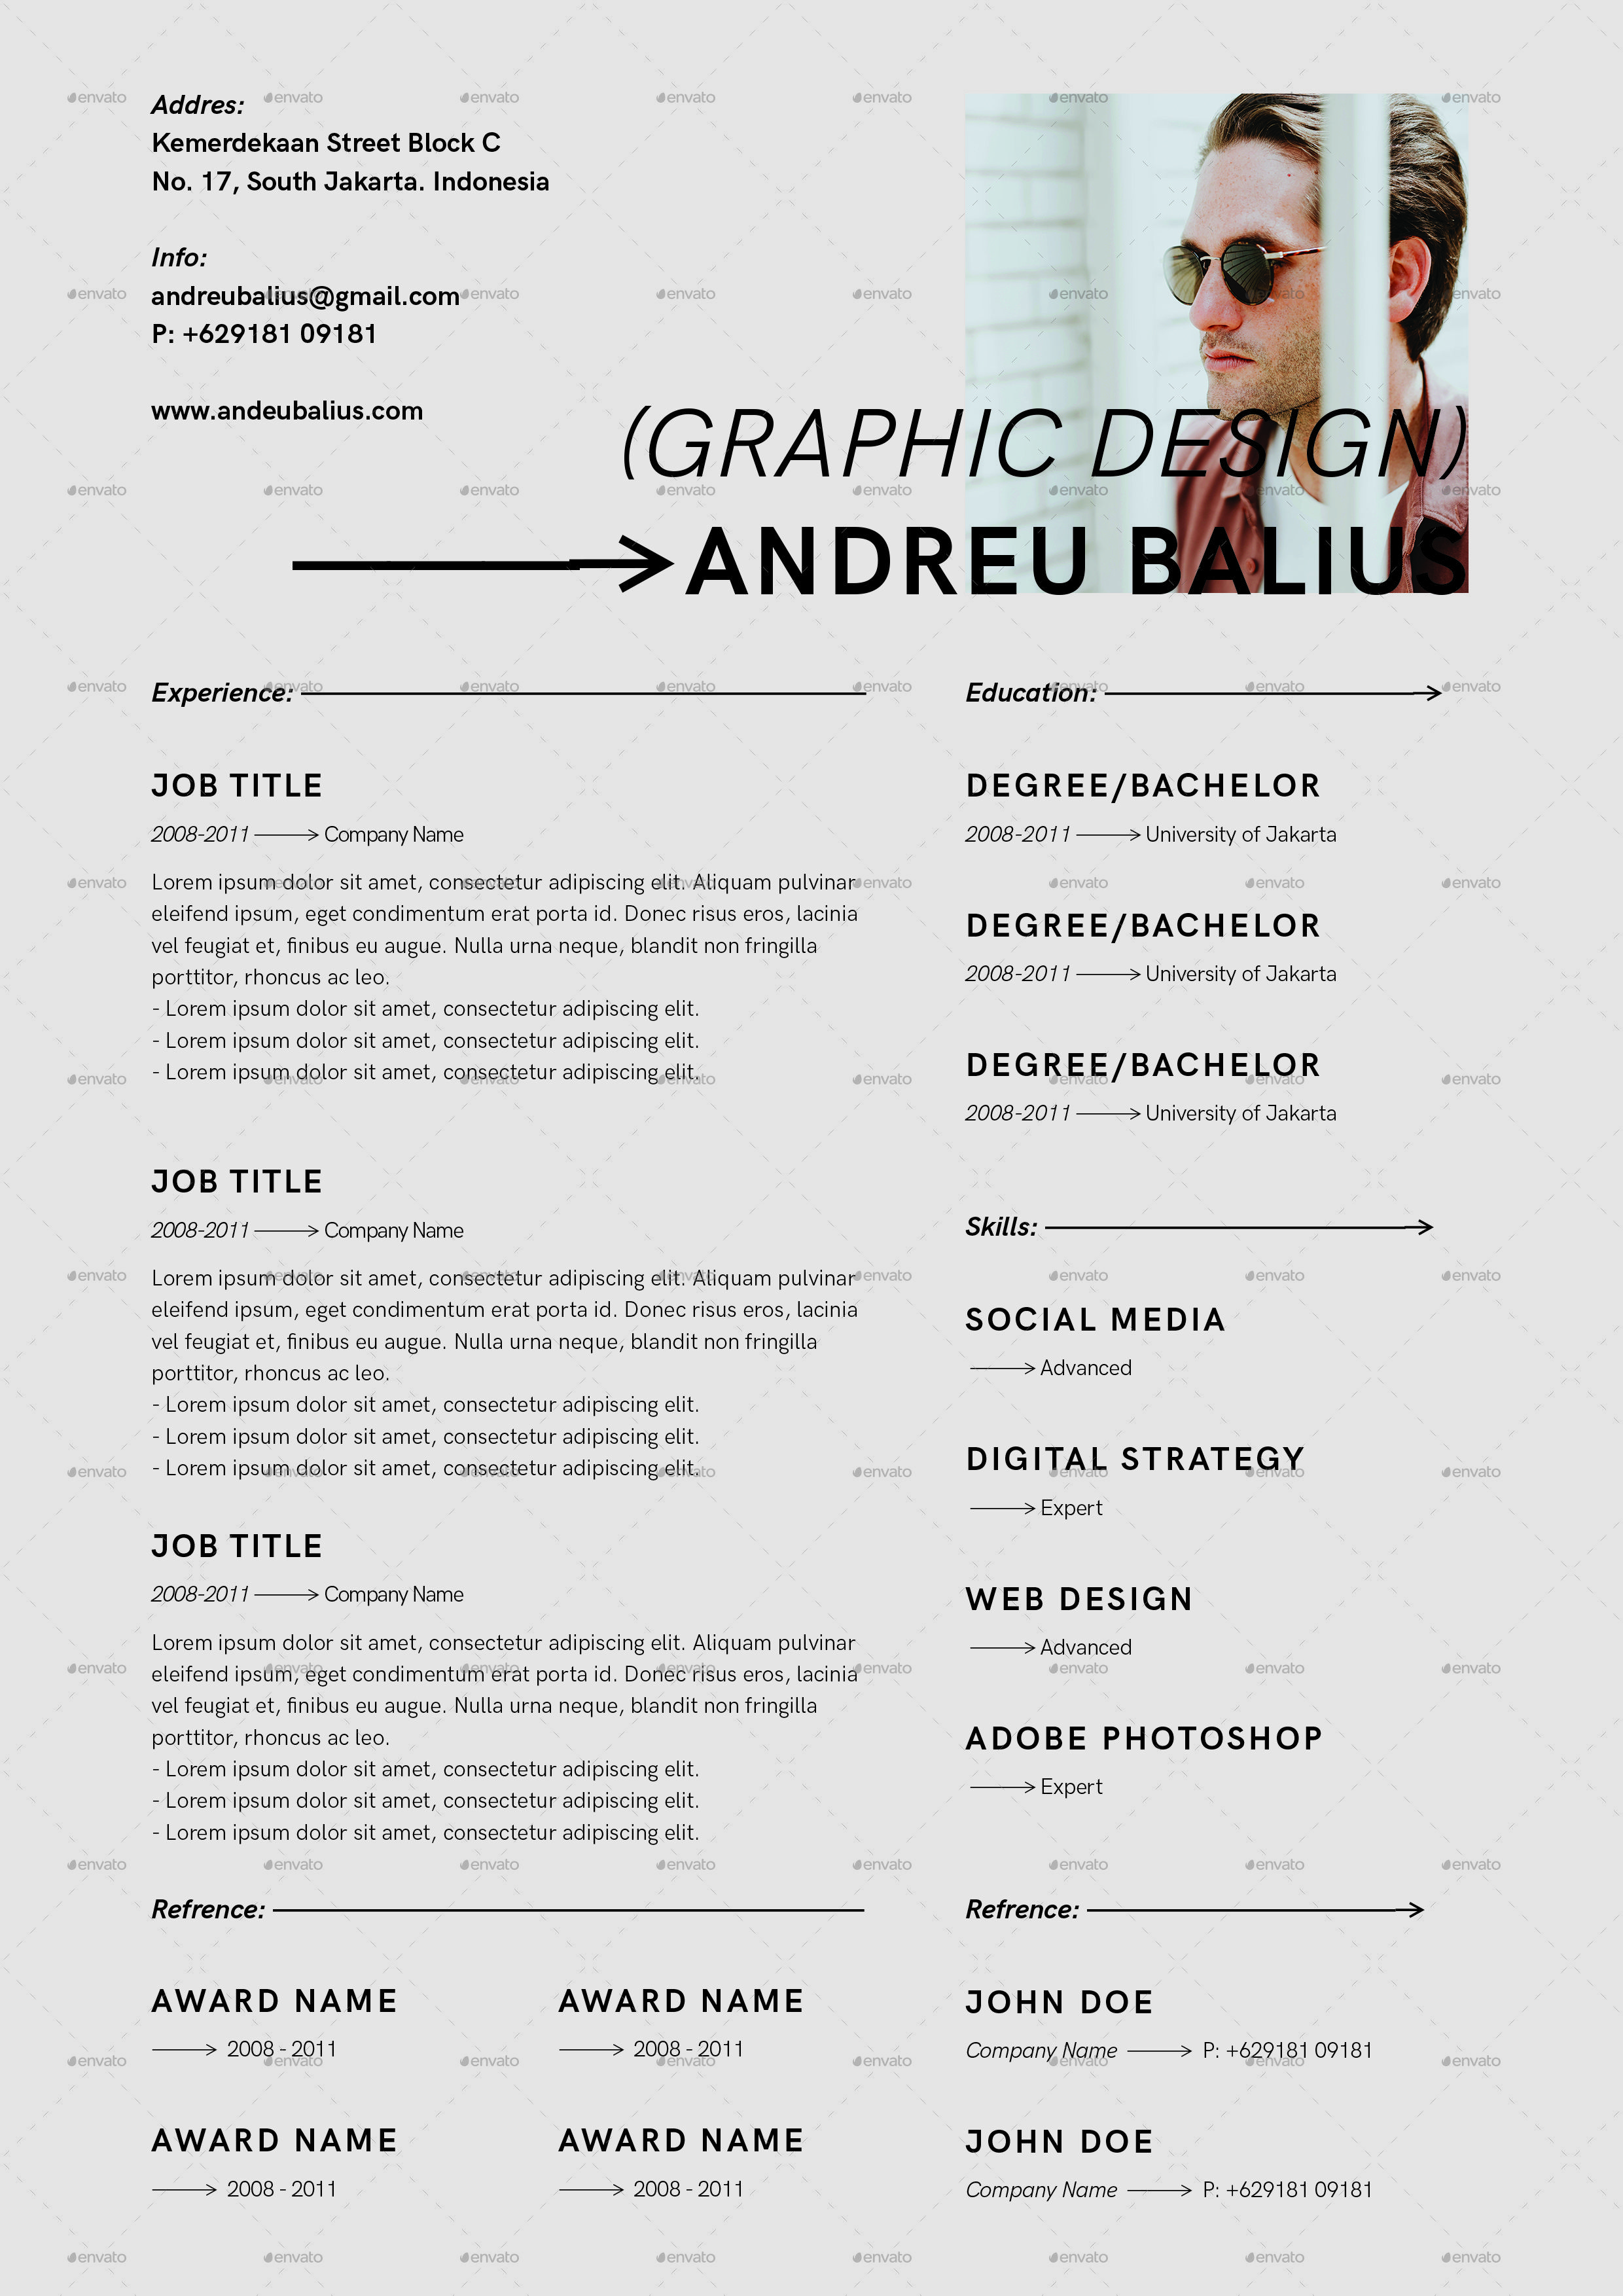 Minimalist Cv Resume Templates Cv Resume Template Resume Design Template Best Resume Template